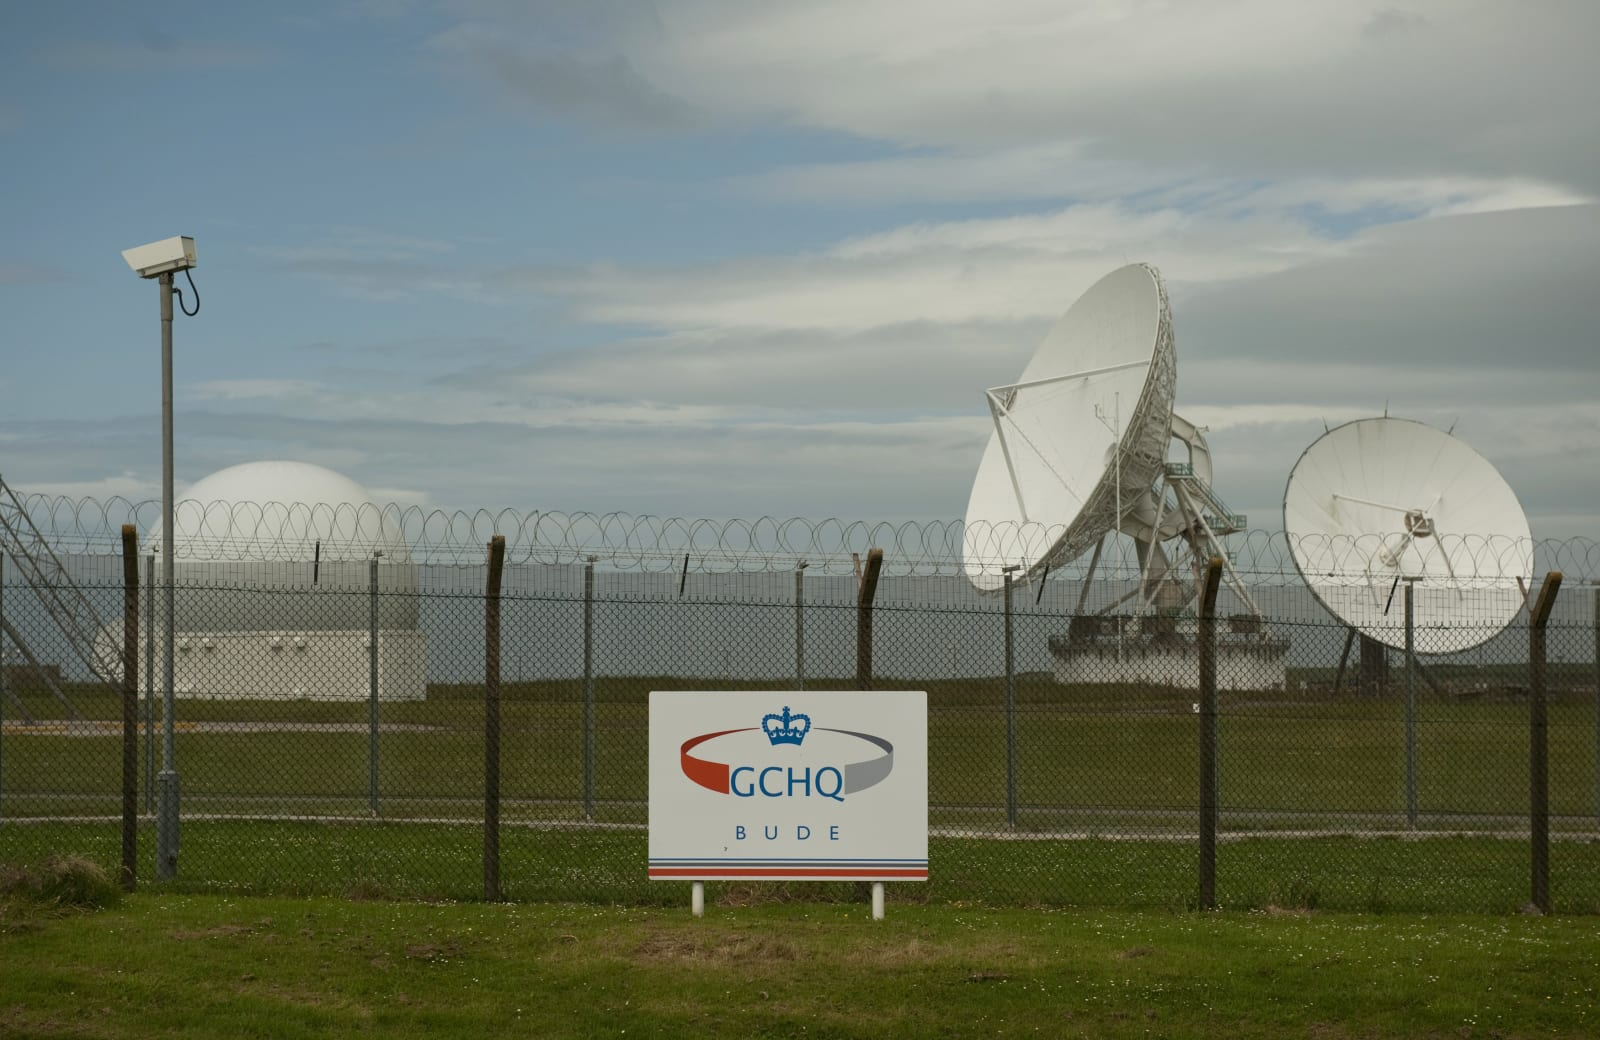 UK spies paid a New Zealand firm to help tap key internet lines